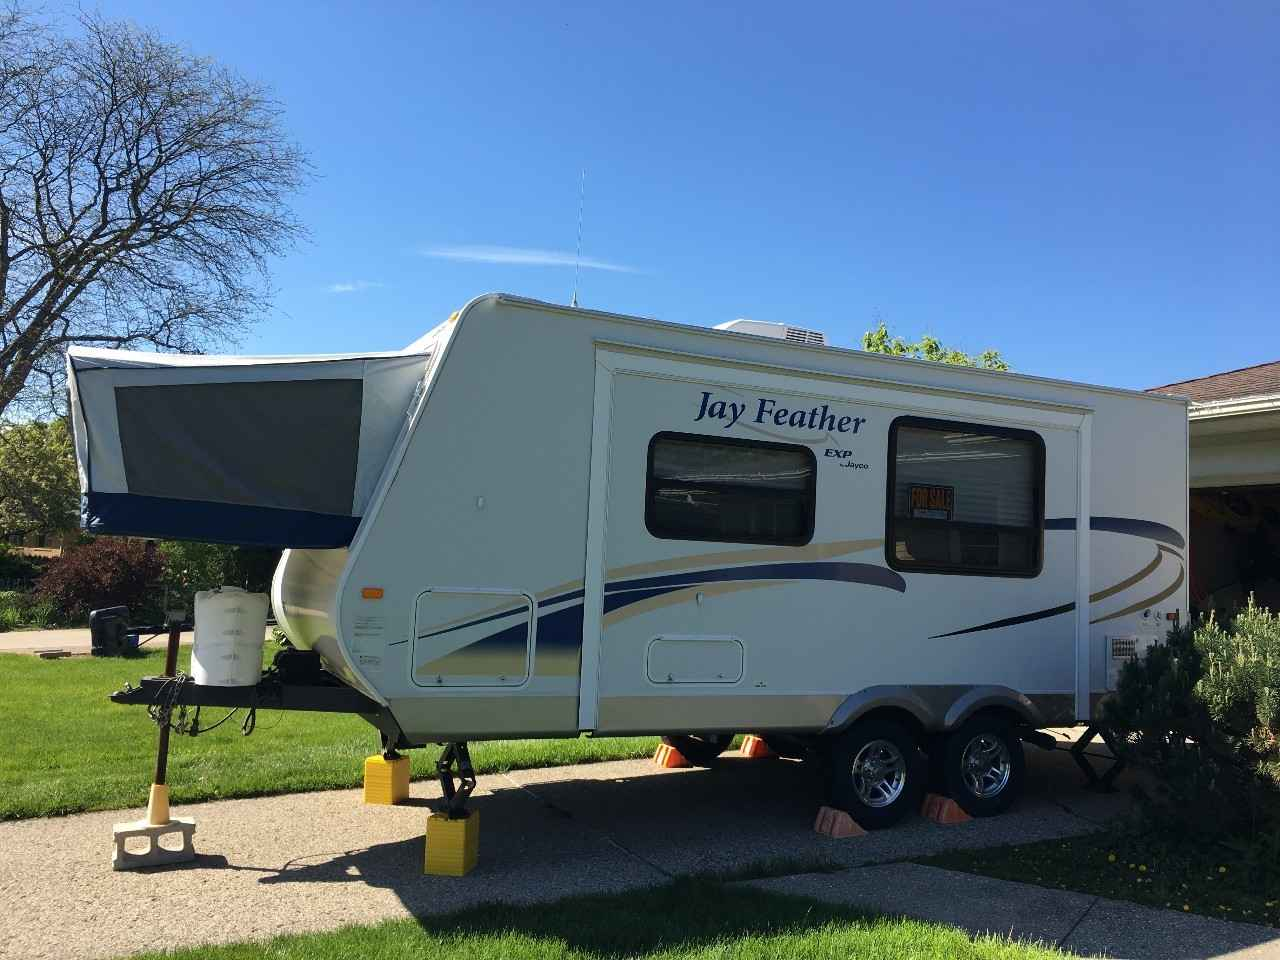 Innovative Thor Industries, The Parent Company Of Jayco, Announced Monday That Several Building Projects Have Already Been Completed The New Buildings Include Two Manufacturing Plants One Will Produce The Eagle Brand Of Travel Trailers